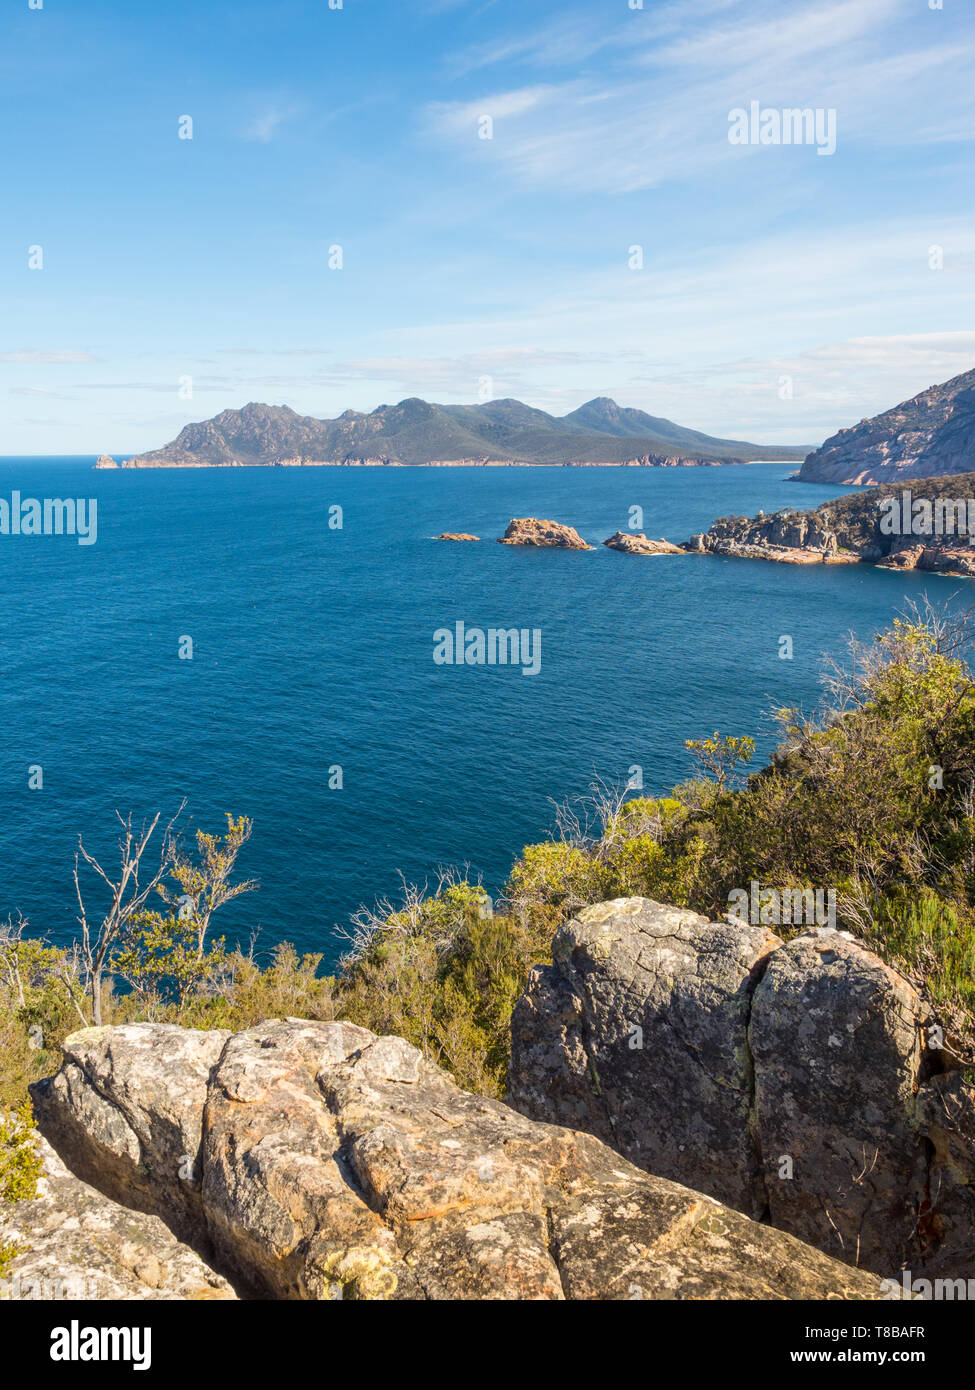 The coastline seen from Cape Tourville Walk in Freycinet National Park in Tasmania, Australia. Stock Photo